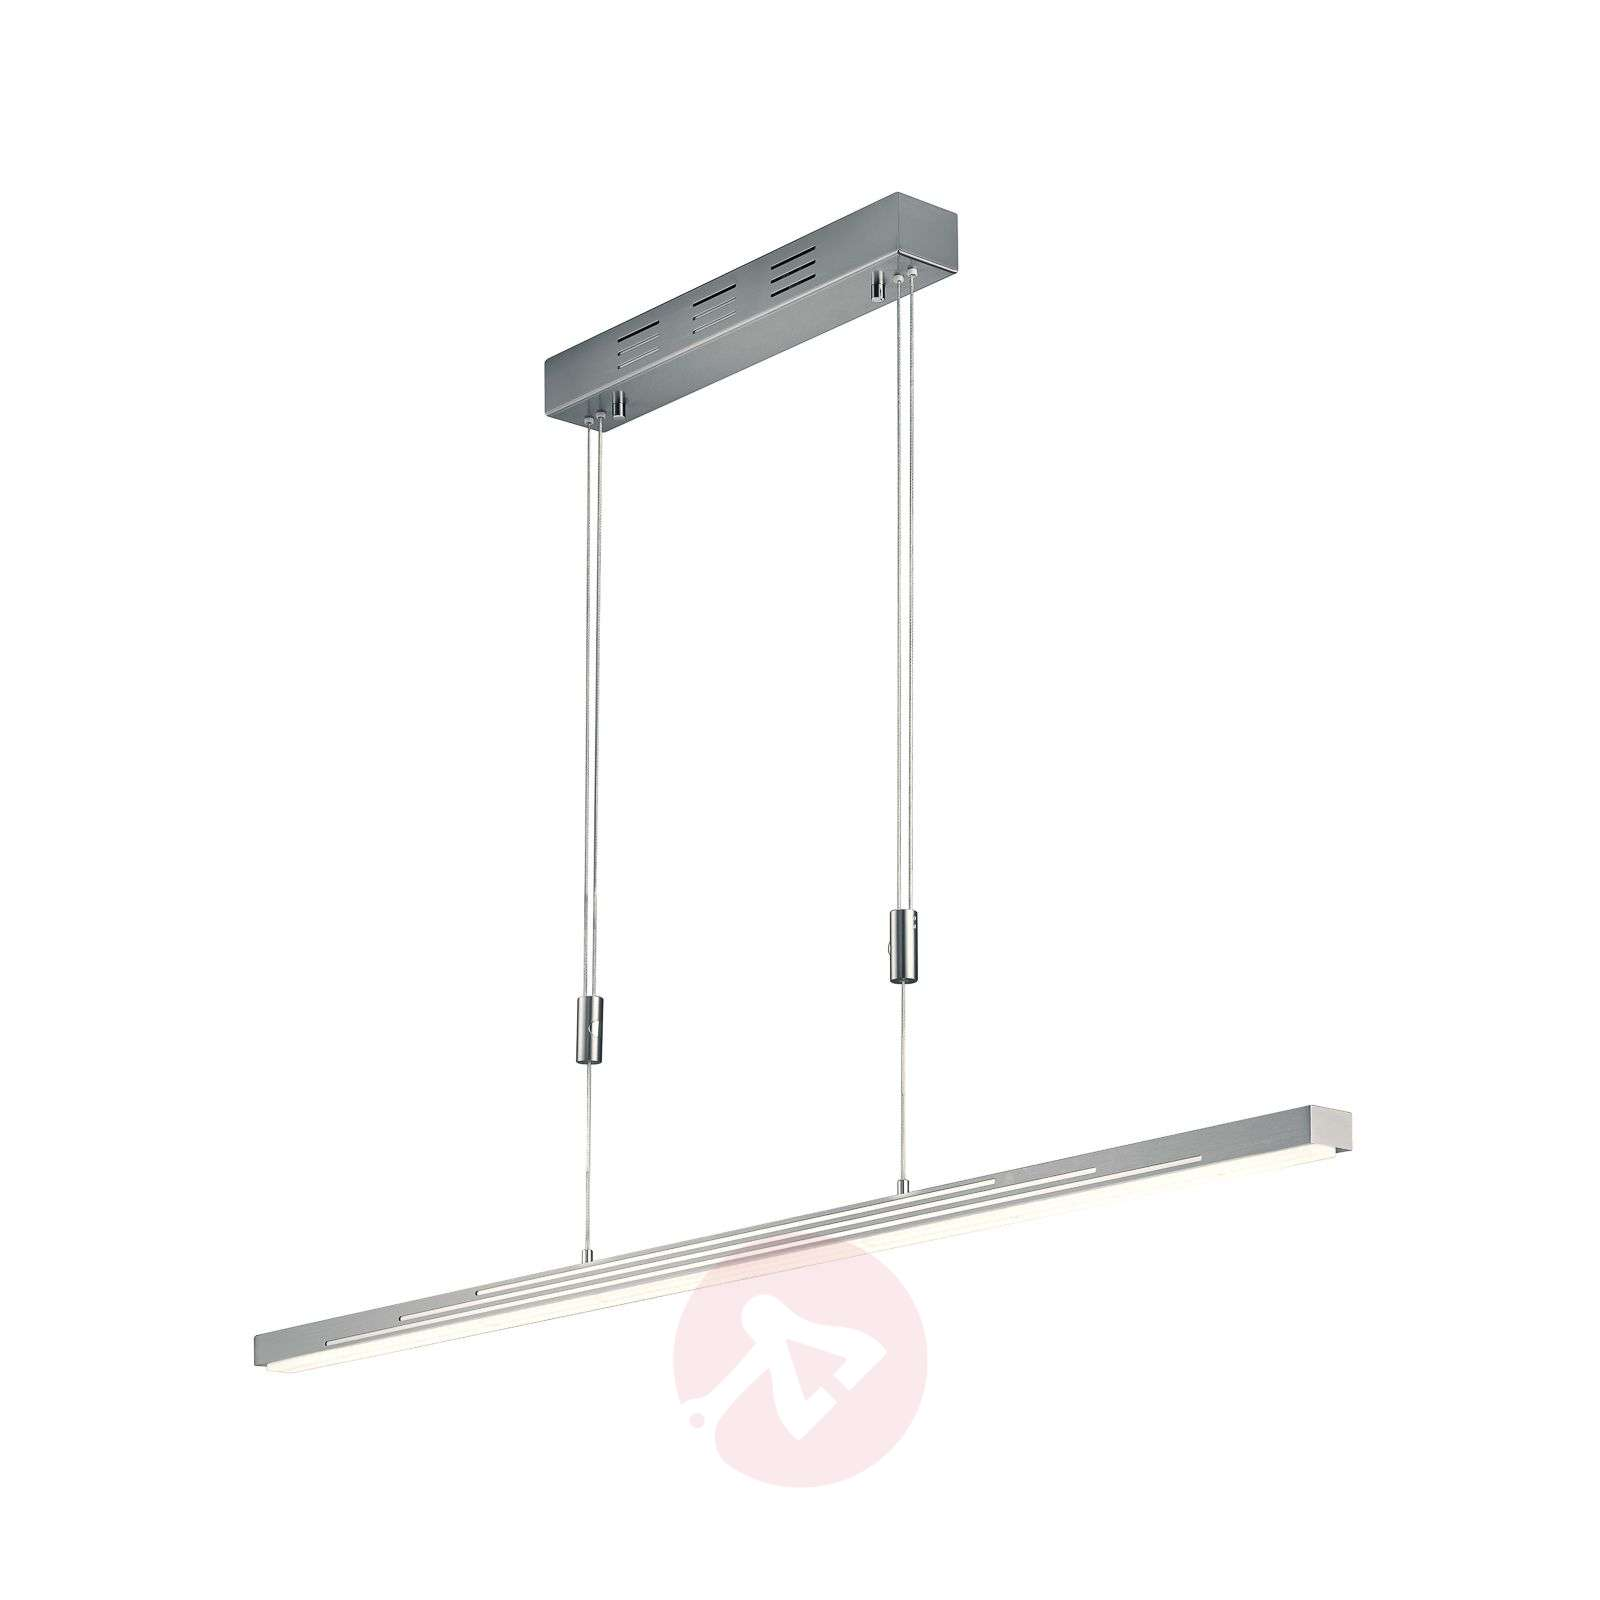 BANKAMP Swing lampa wisząca LED, Smart Home-1572023-01